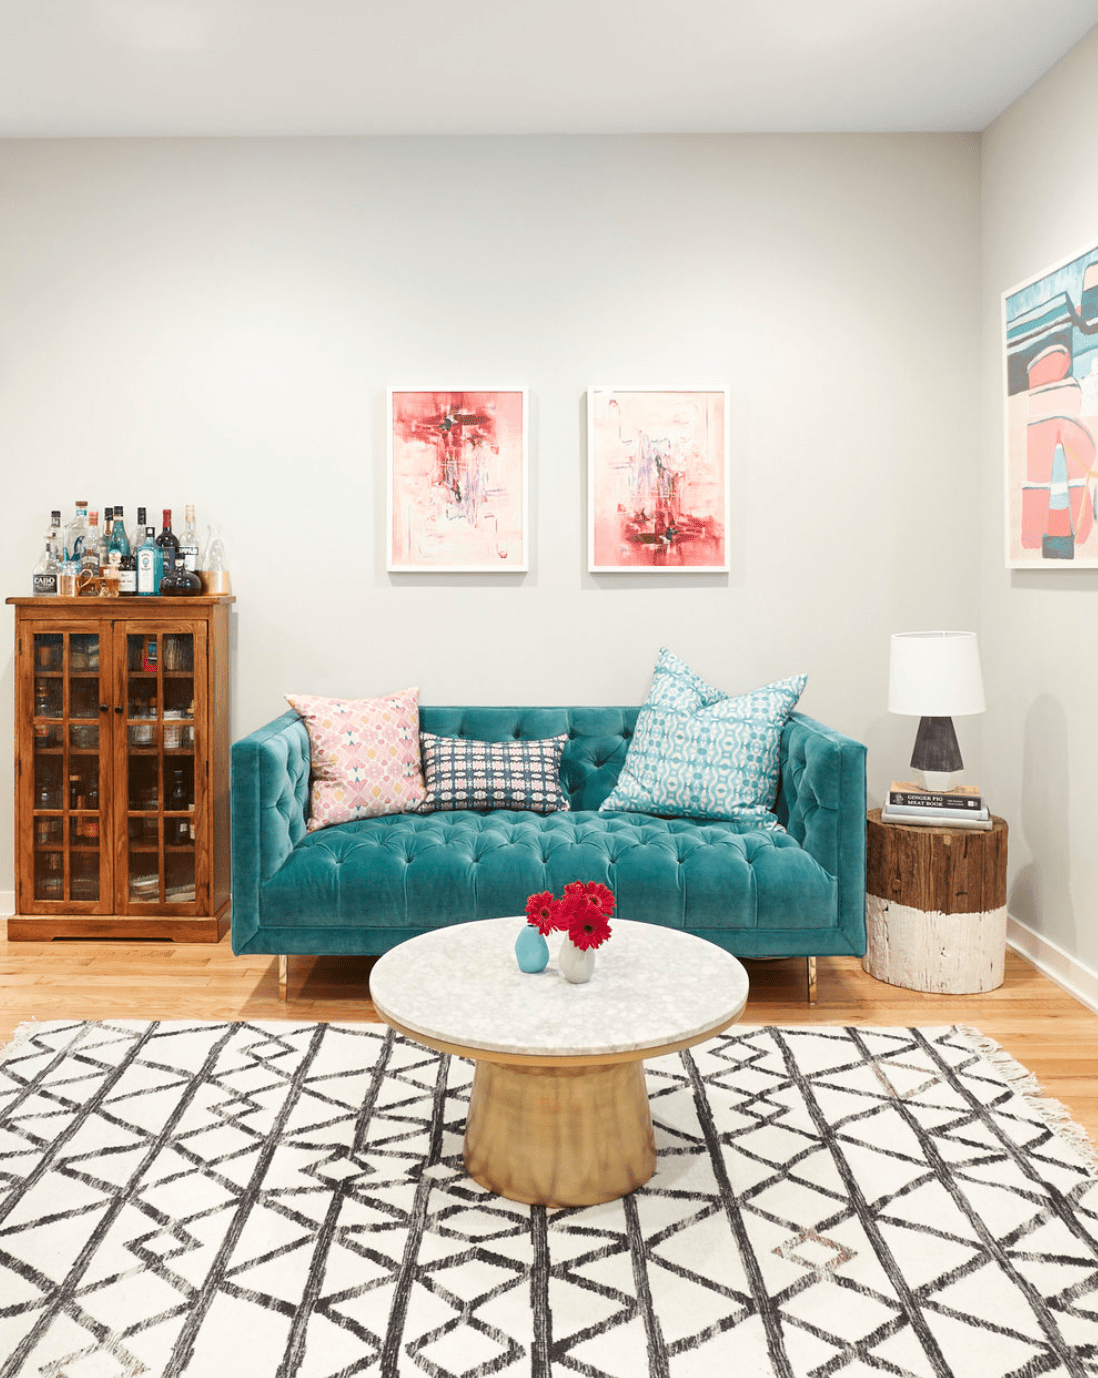 Living room with hung artwork, teal tufted loveseat and patterned area rug